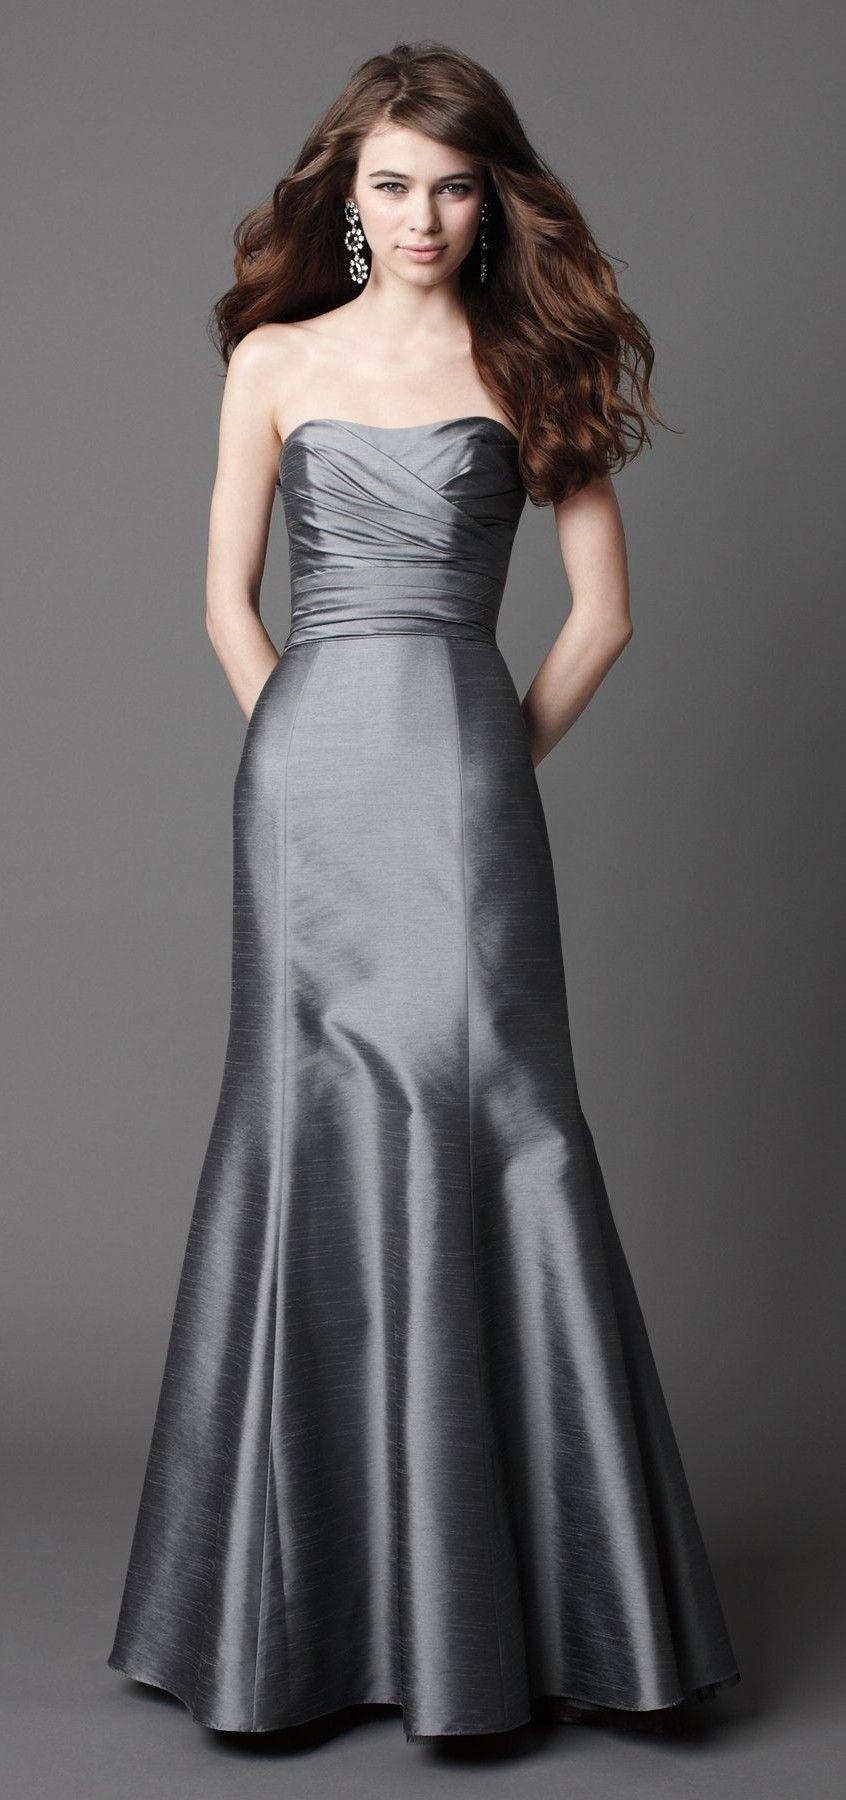 Style bridesmaid dresses at weddington way bridesmaid dress